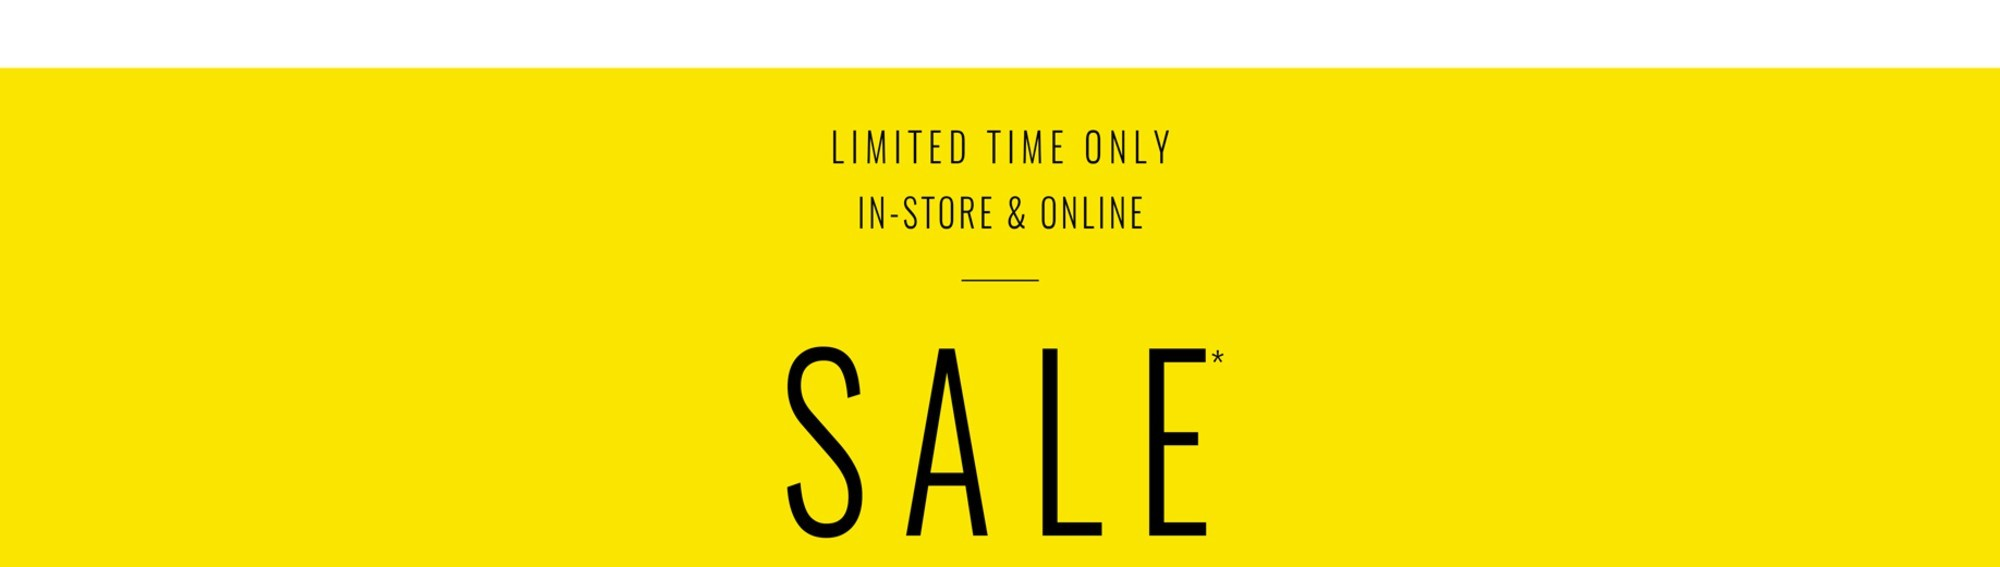 Sale - Further Markdowns